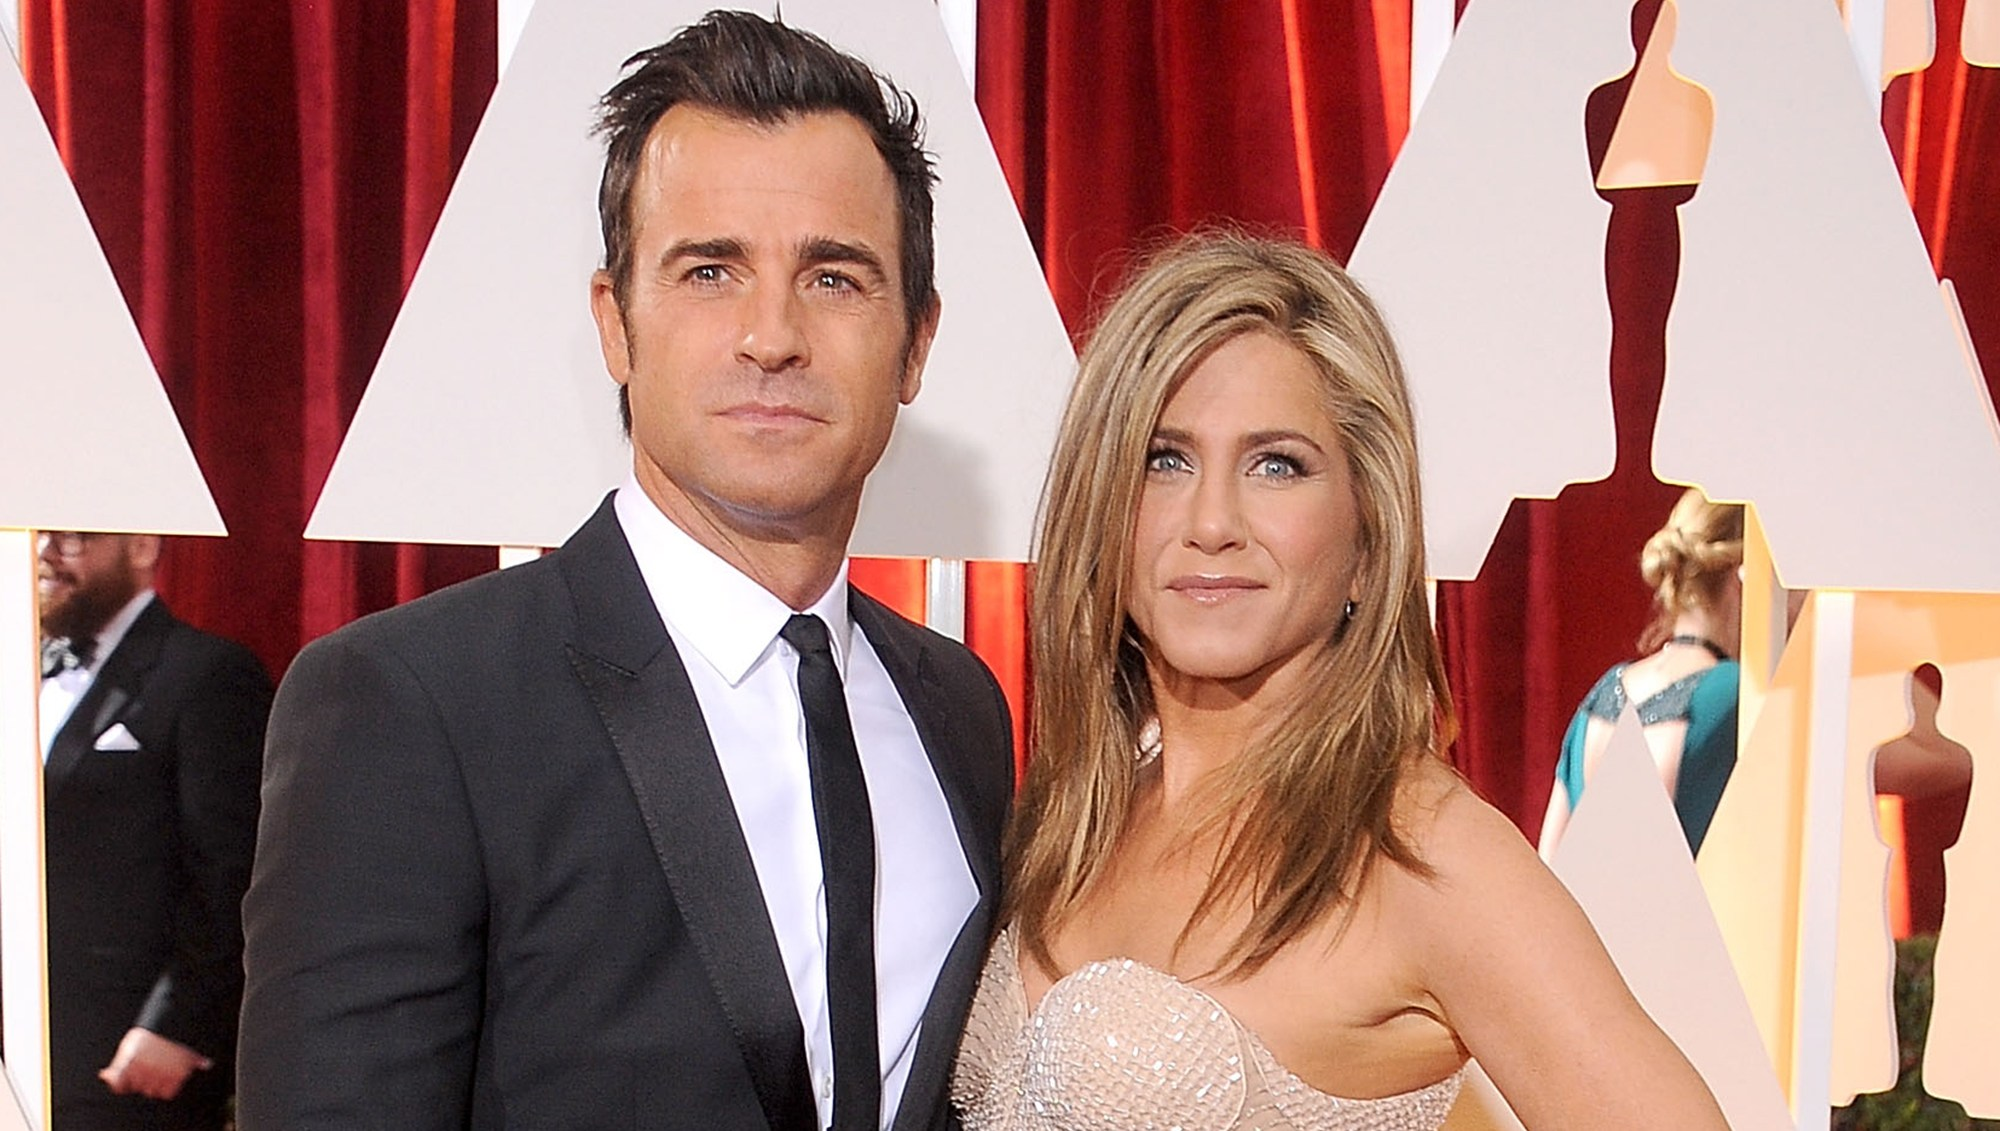 Jennifer Aniston and Justin Theroux talk once